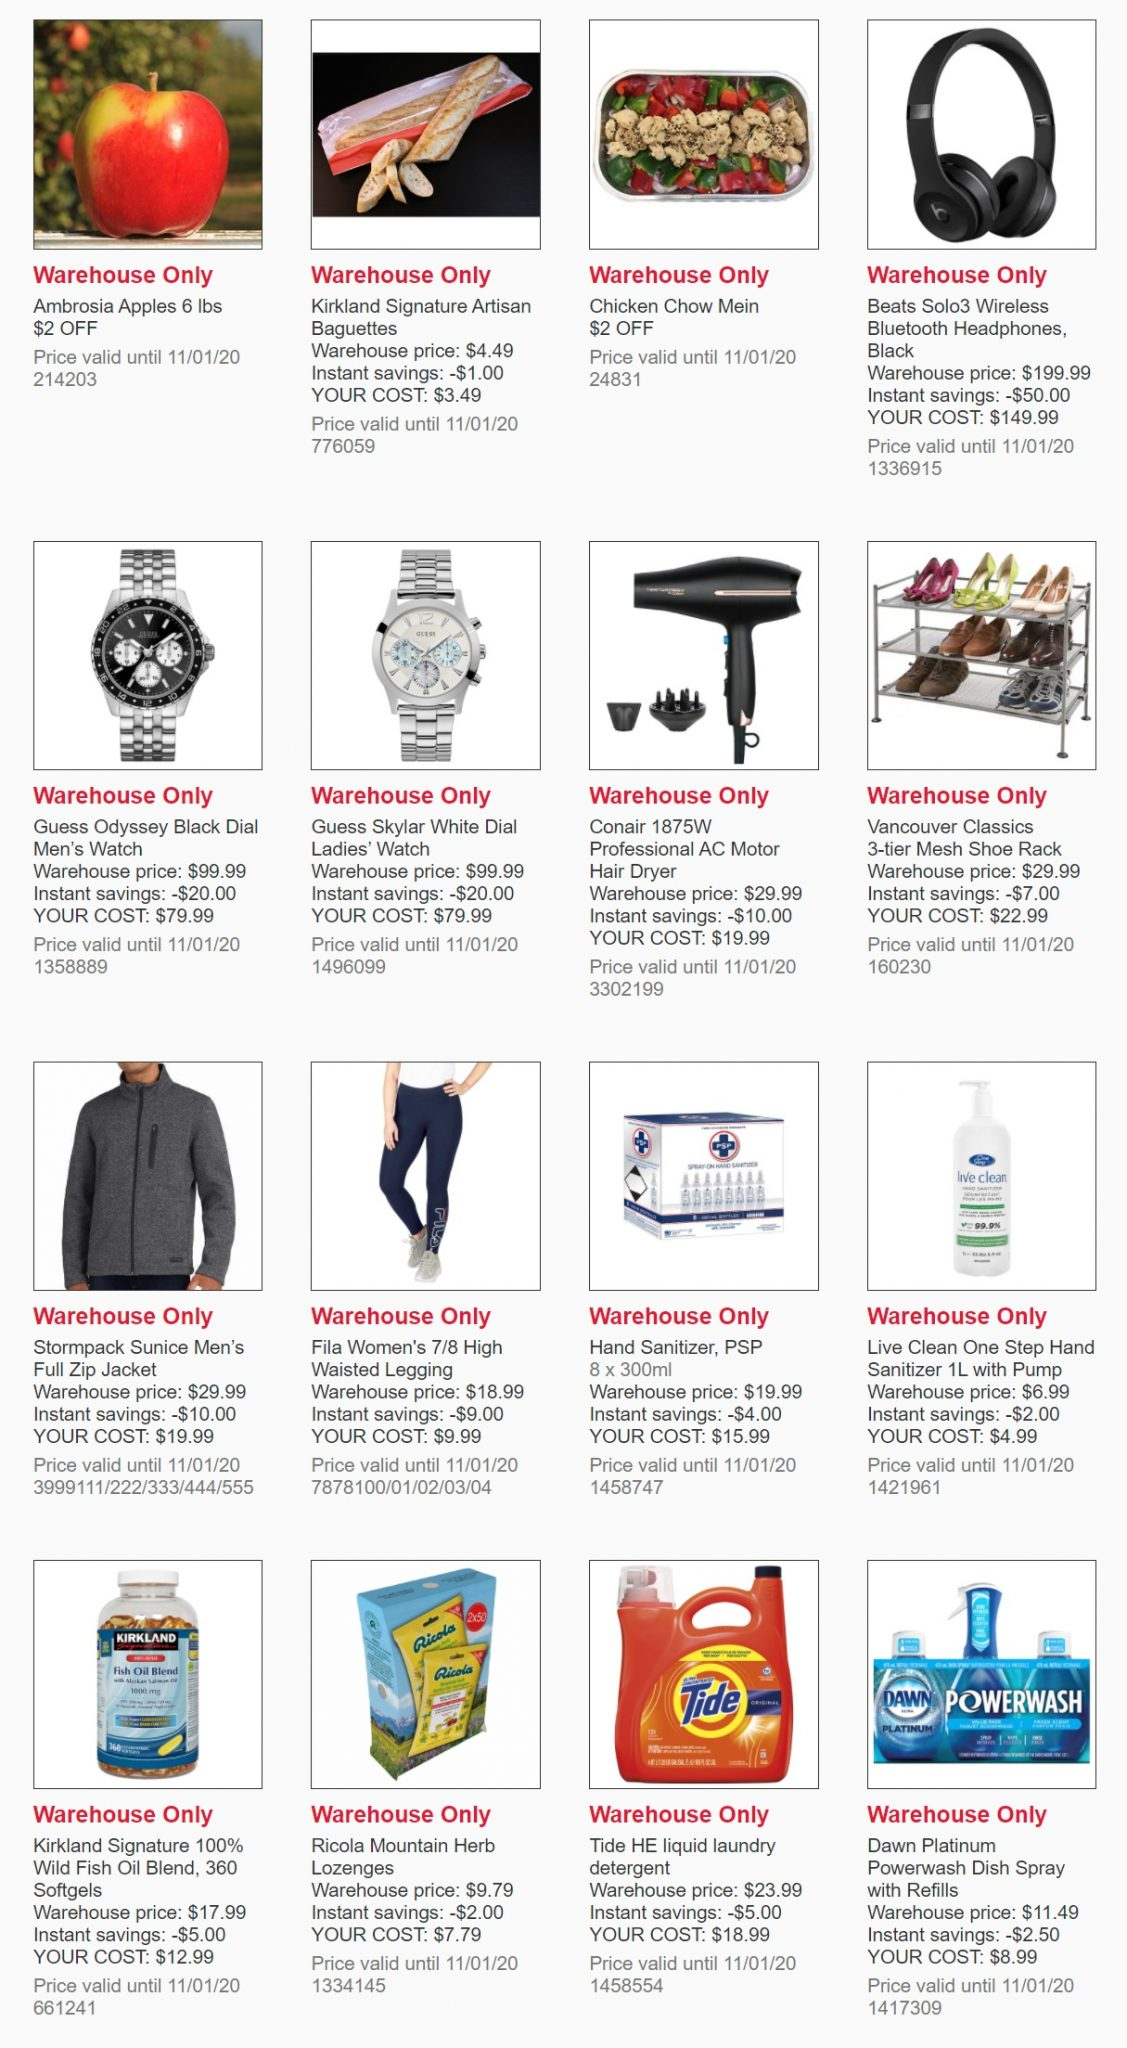 Weekend Update - Costco Sale Items for Jan 18-19, 2020 for